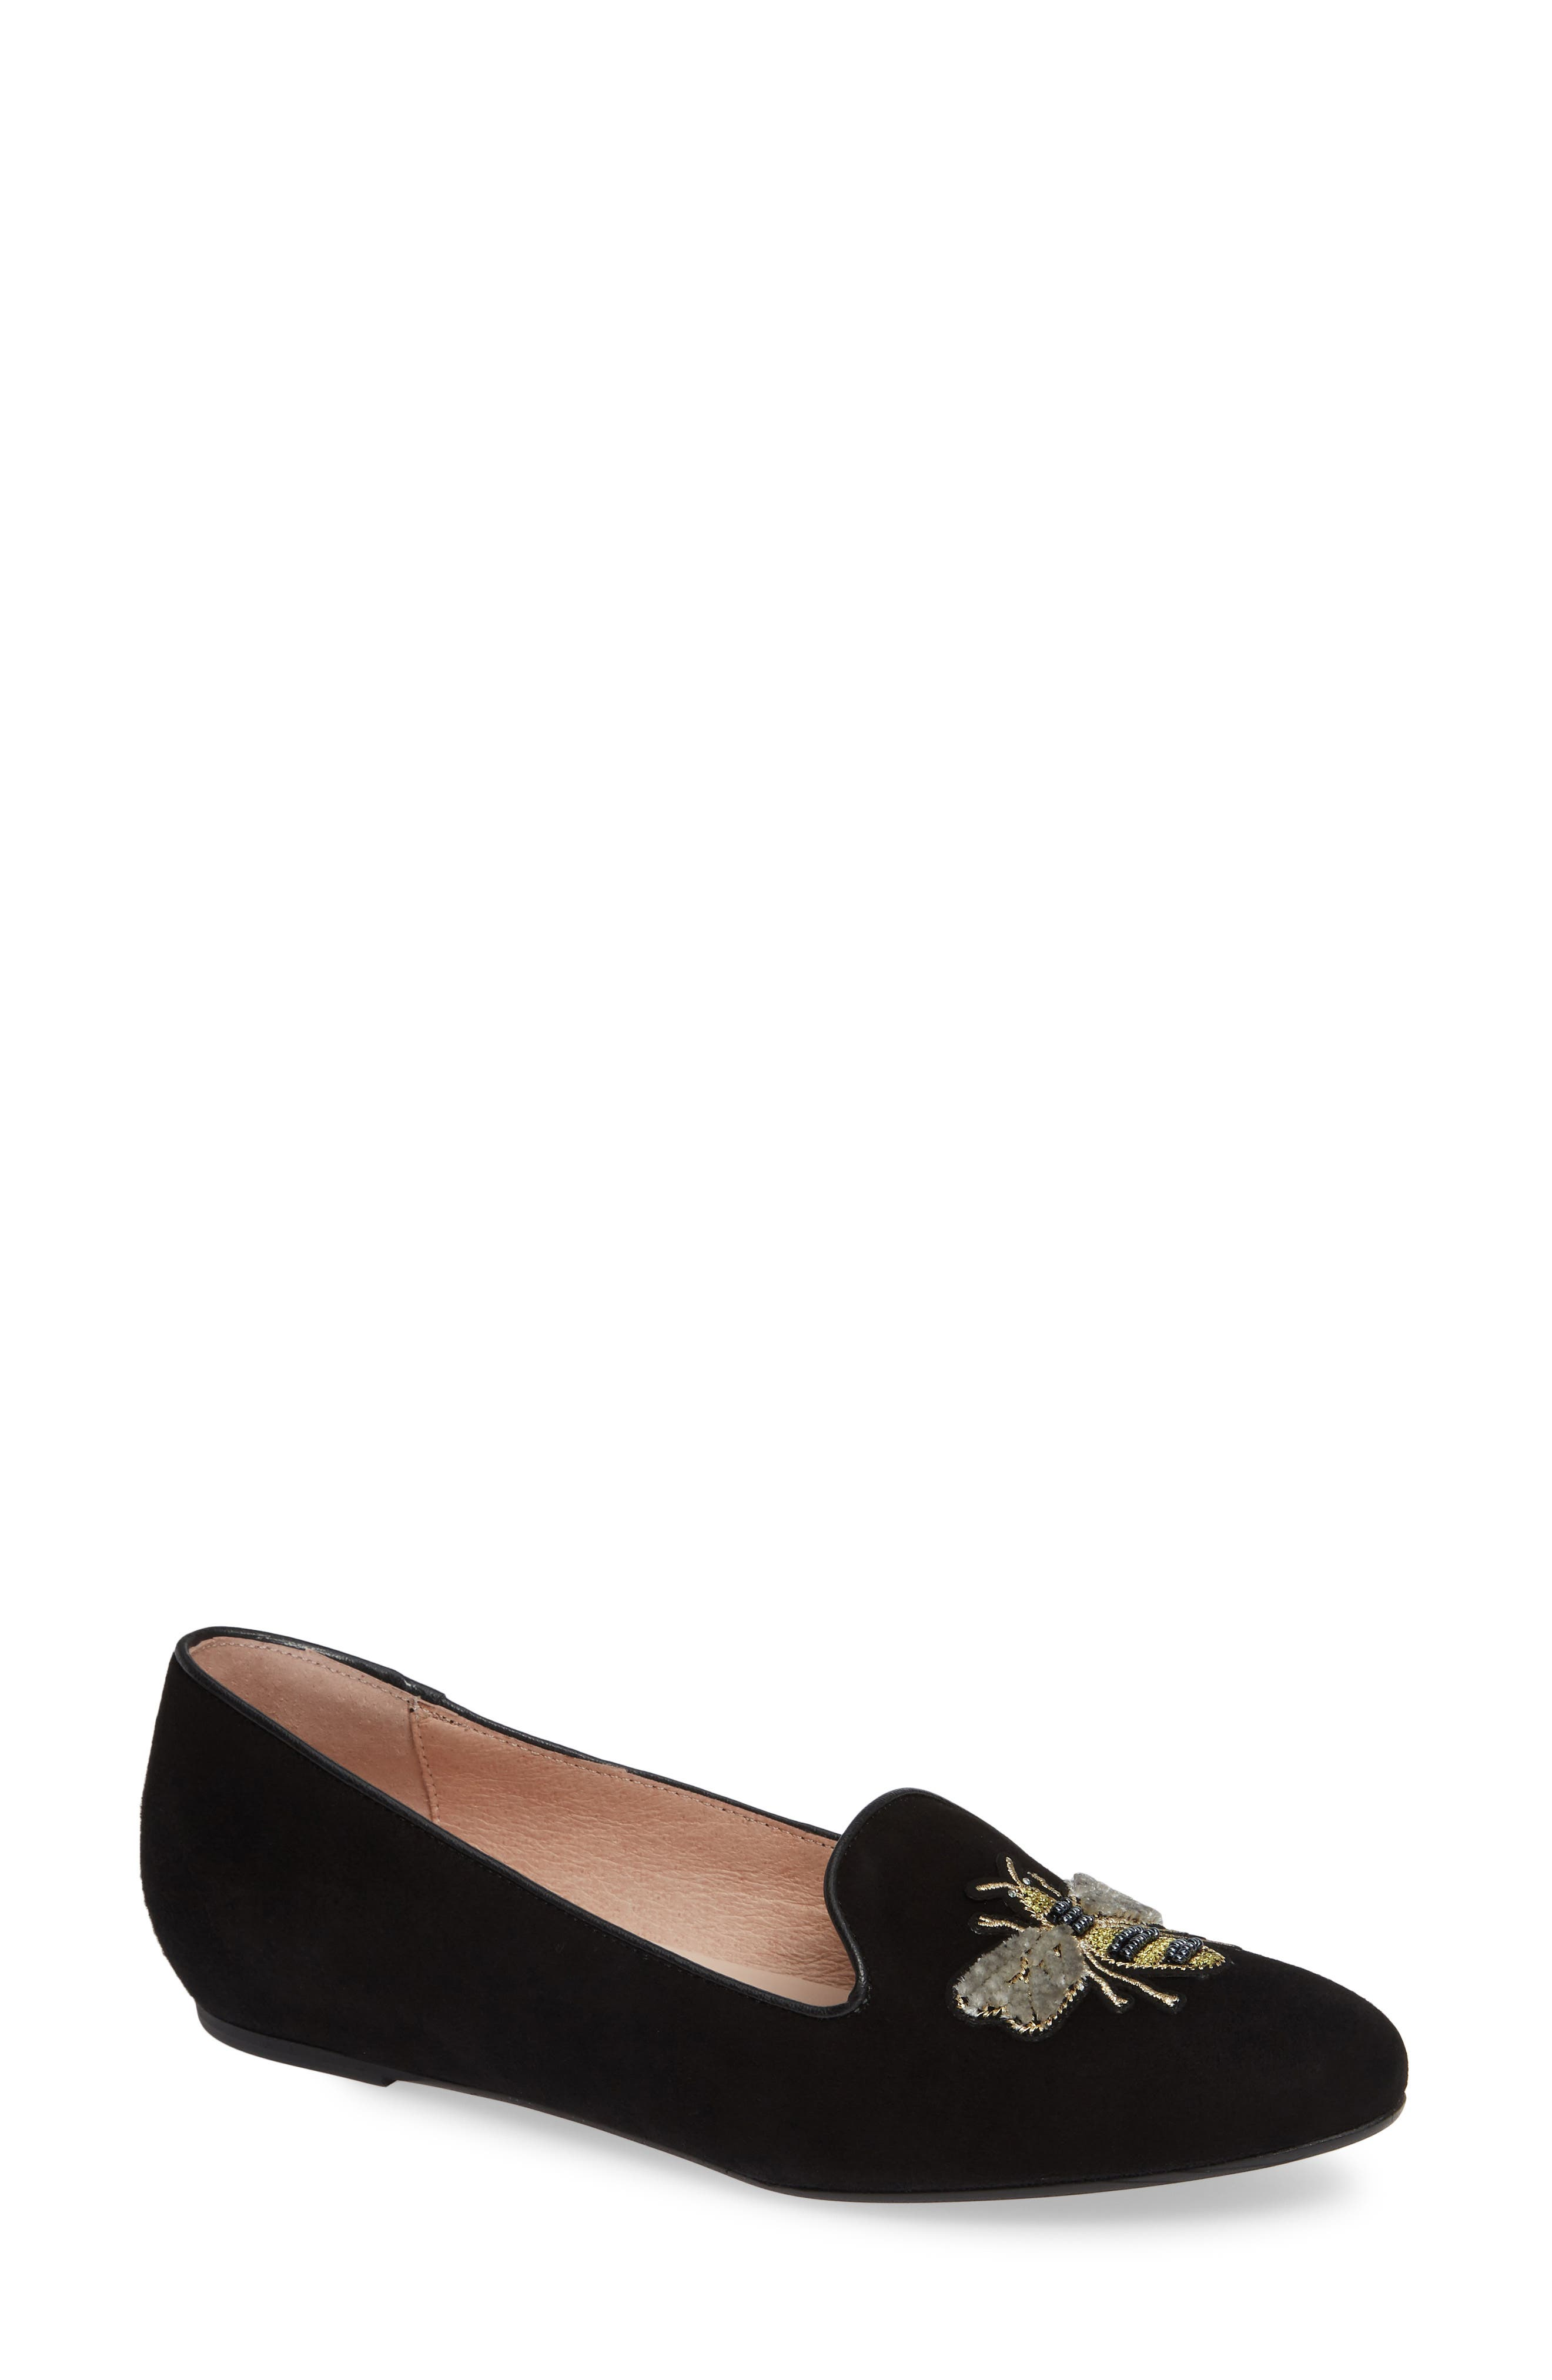 Patricia Green Embroidered Bee Loafer, Black